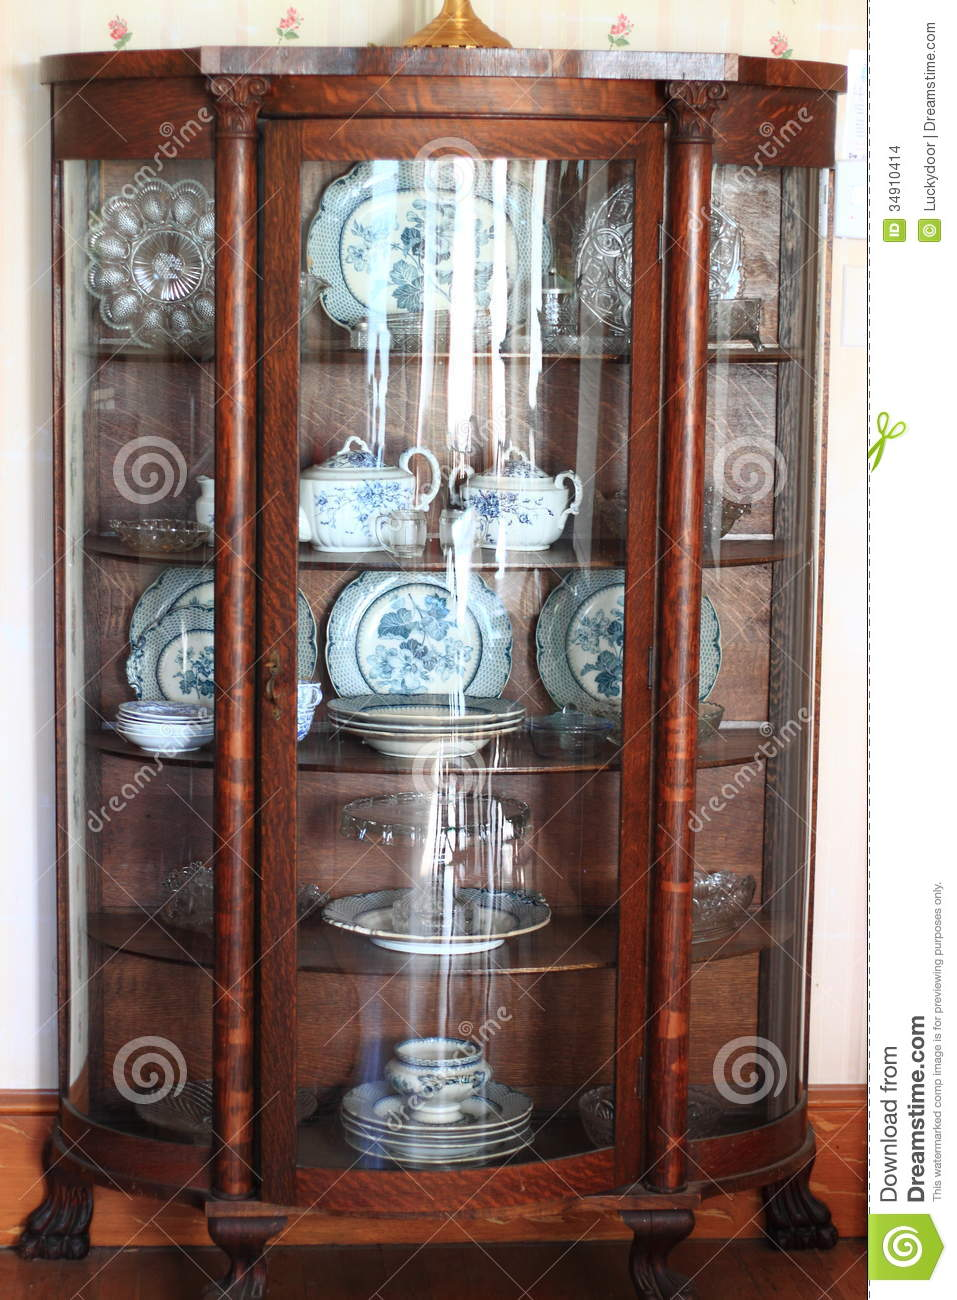 Antique China Cabinet - Antique China Cabinet Stock Photo. Image Of Hardwood - 34910414